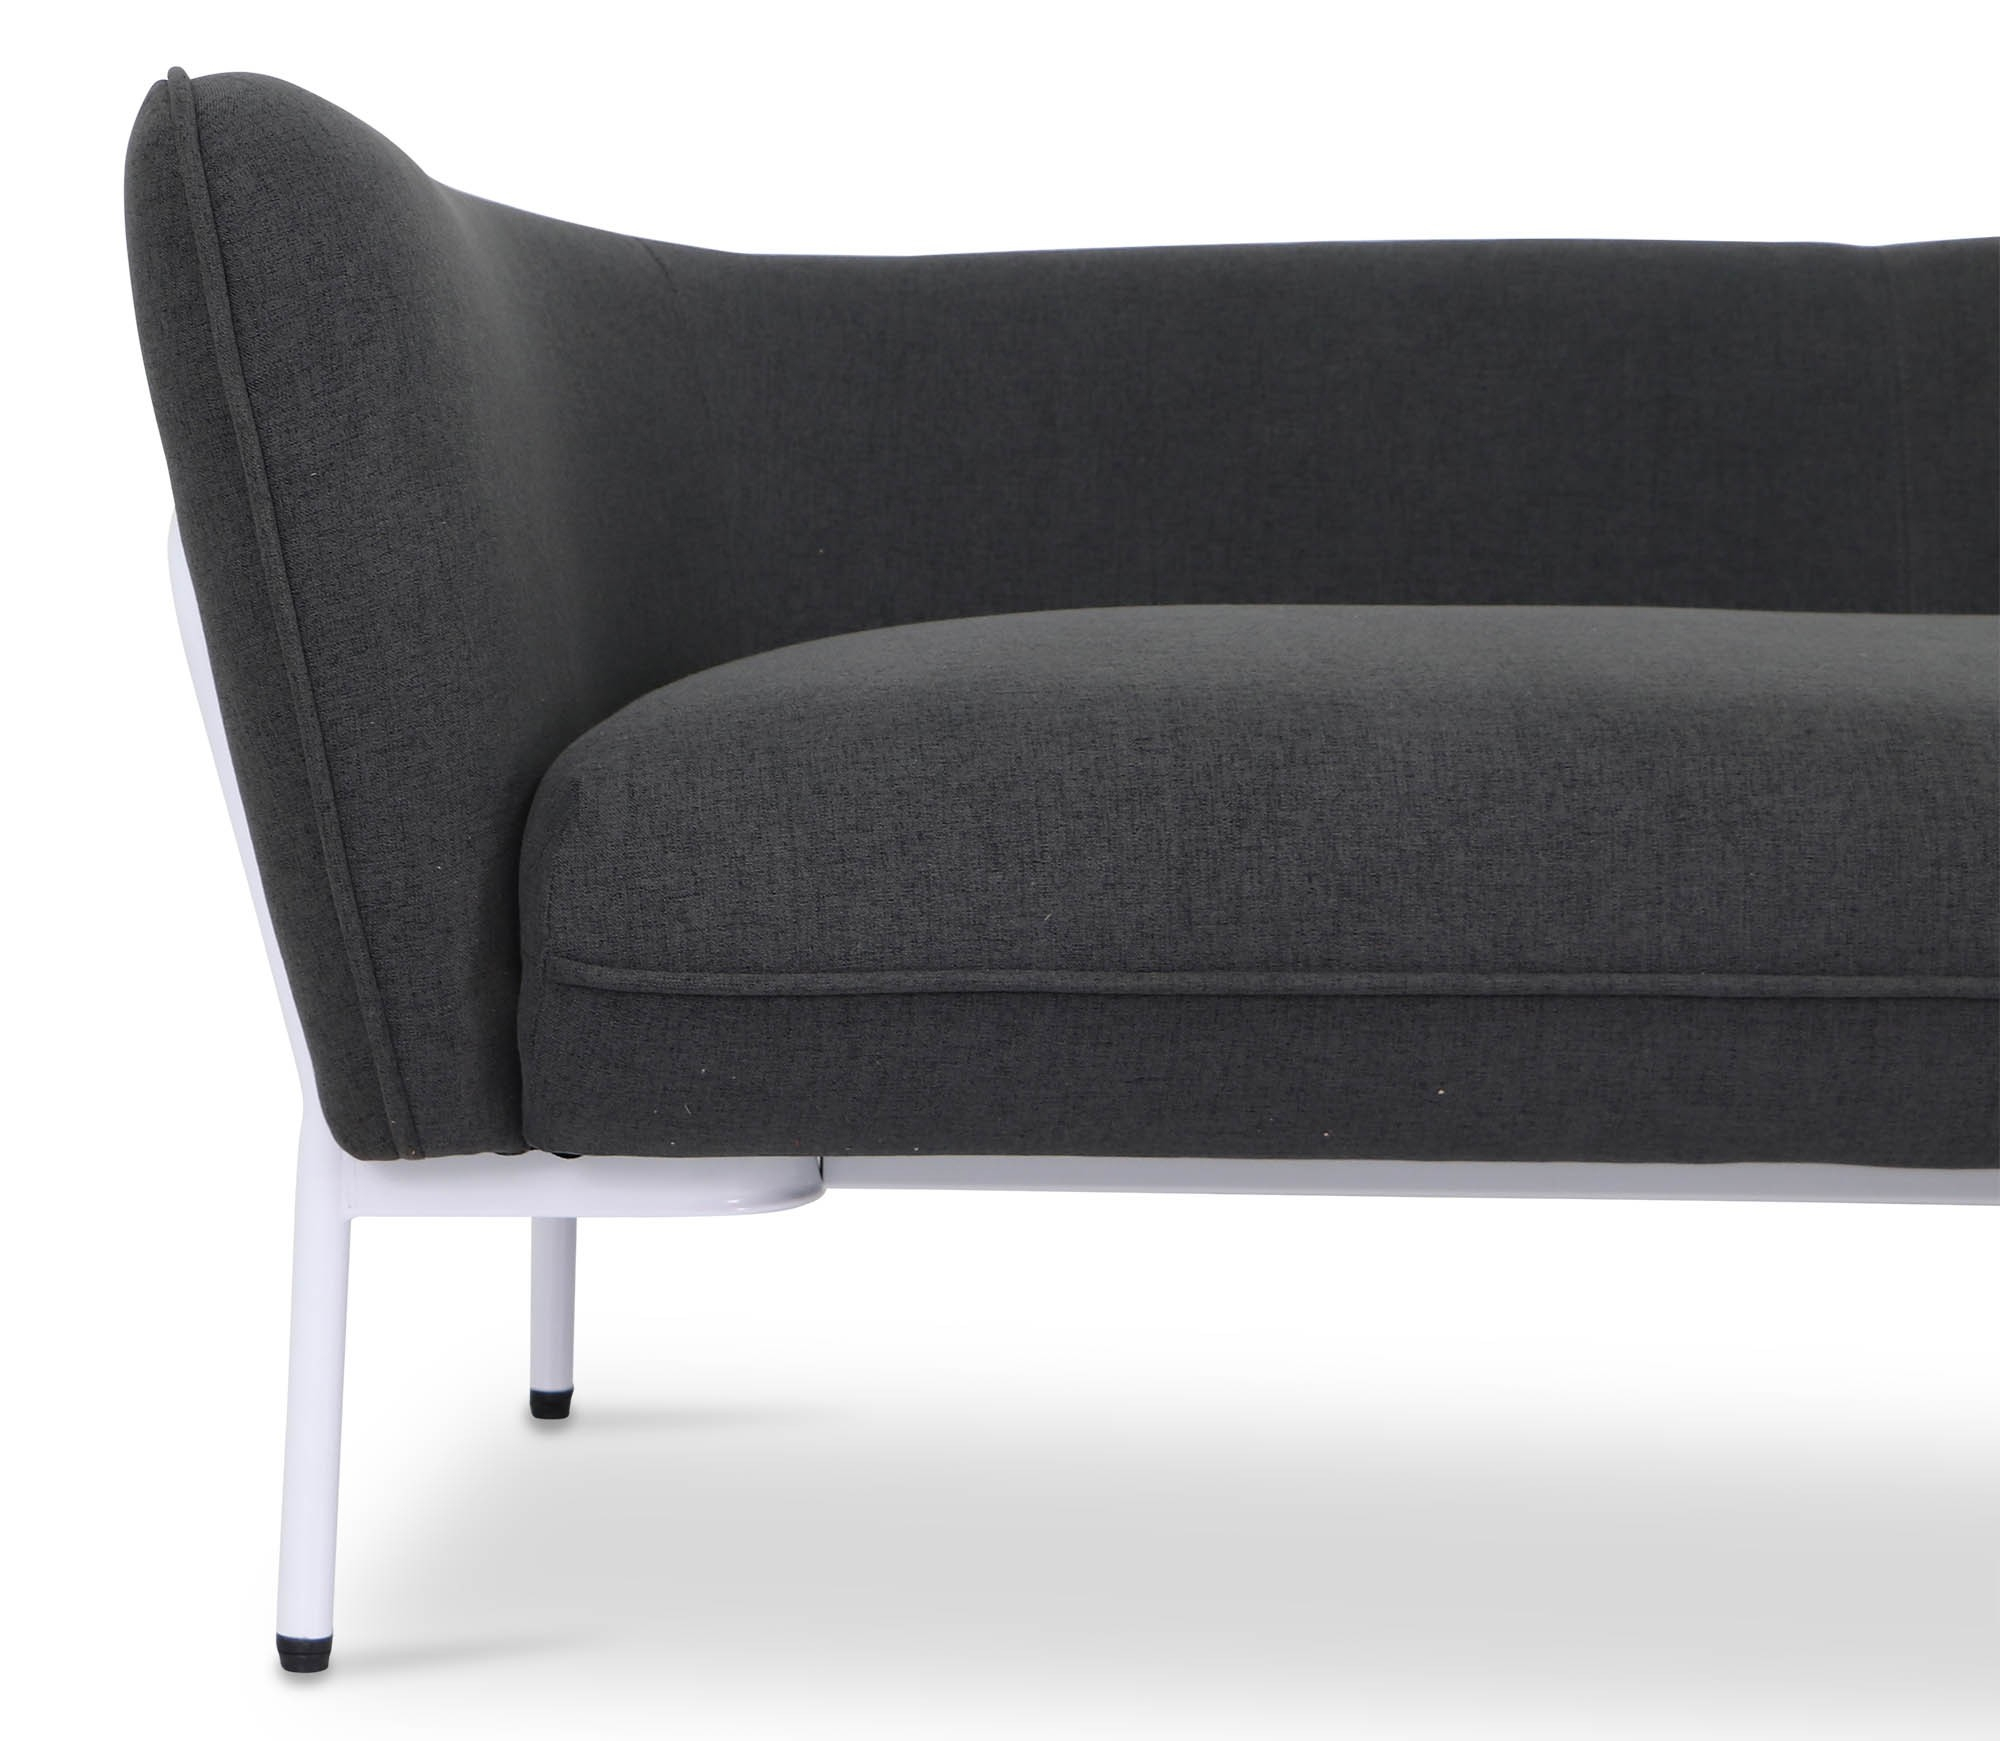 Karen Sofa In Dark Grey With White Iron Stand | Furniture & Home For Karen Sofa Chairs (Image 12 of 20)